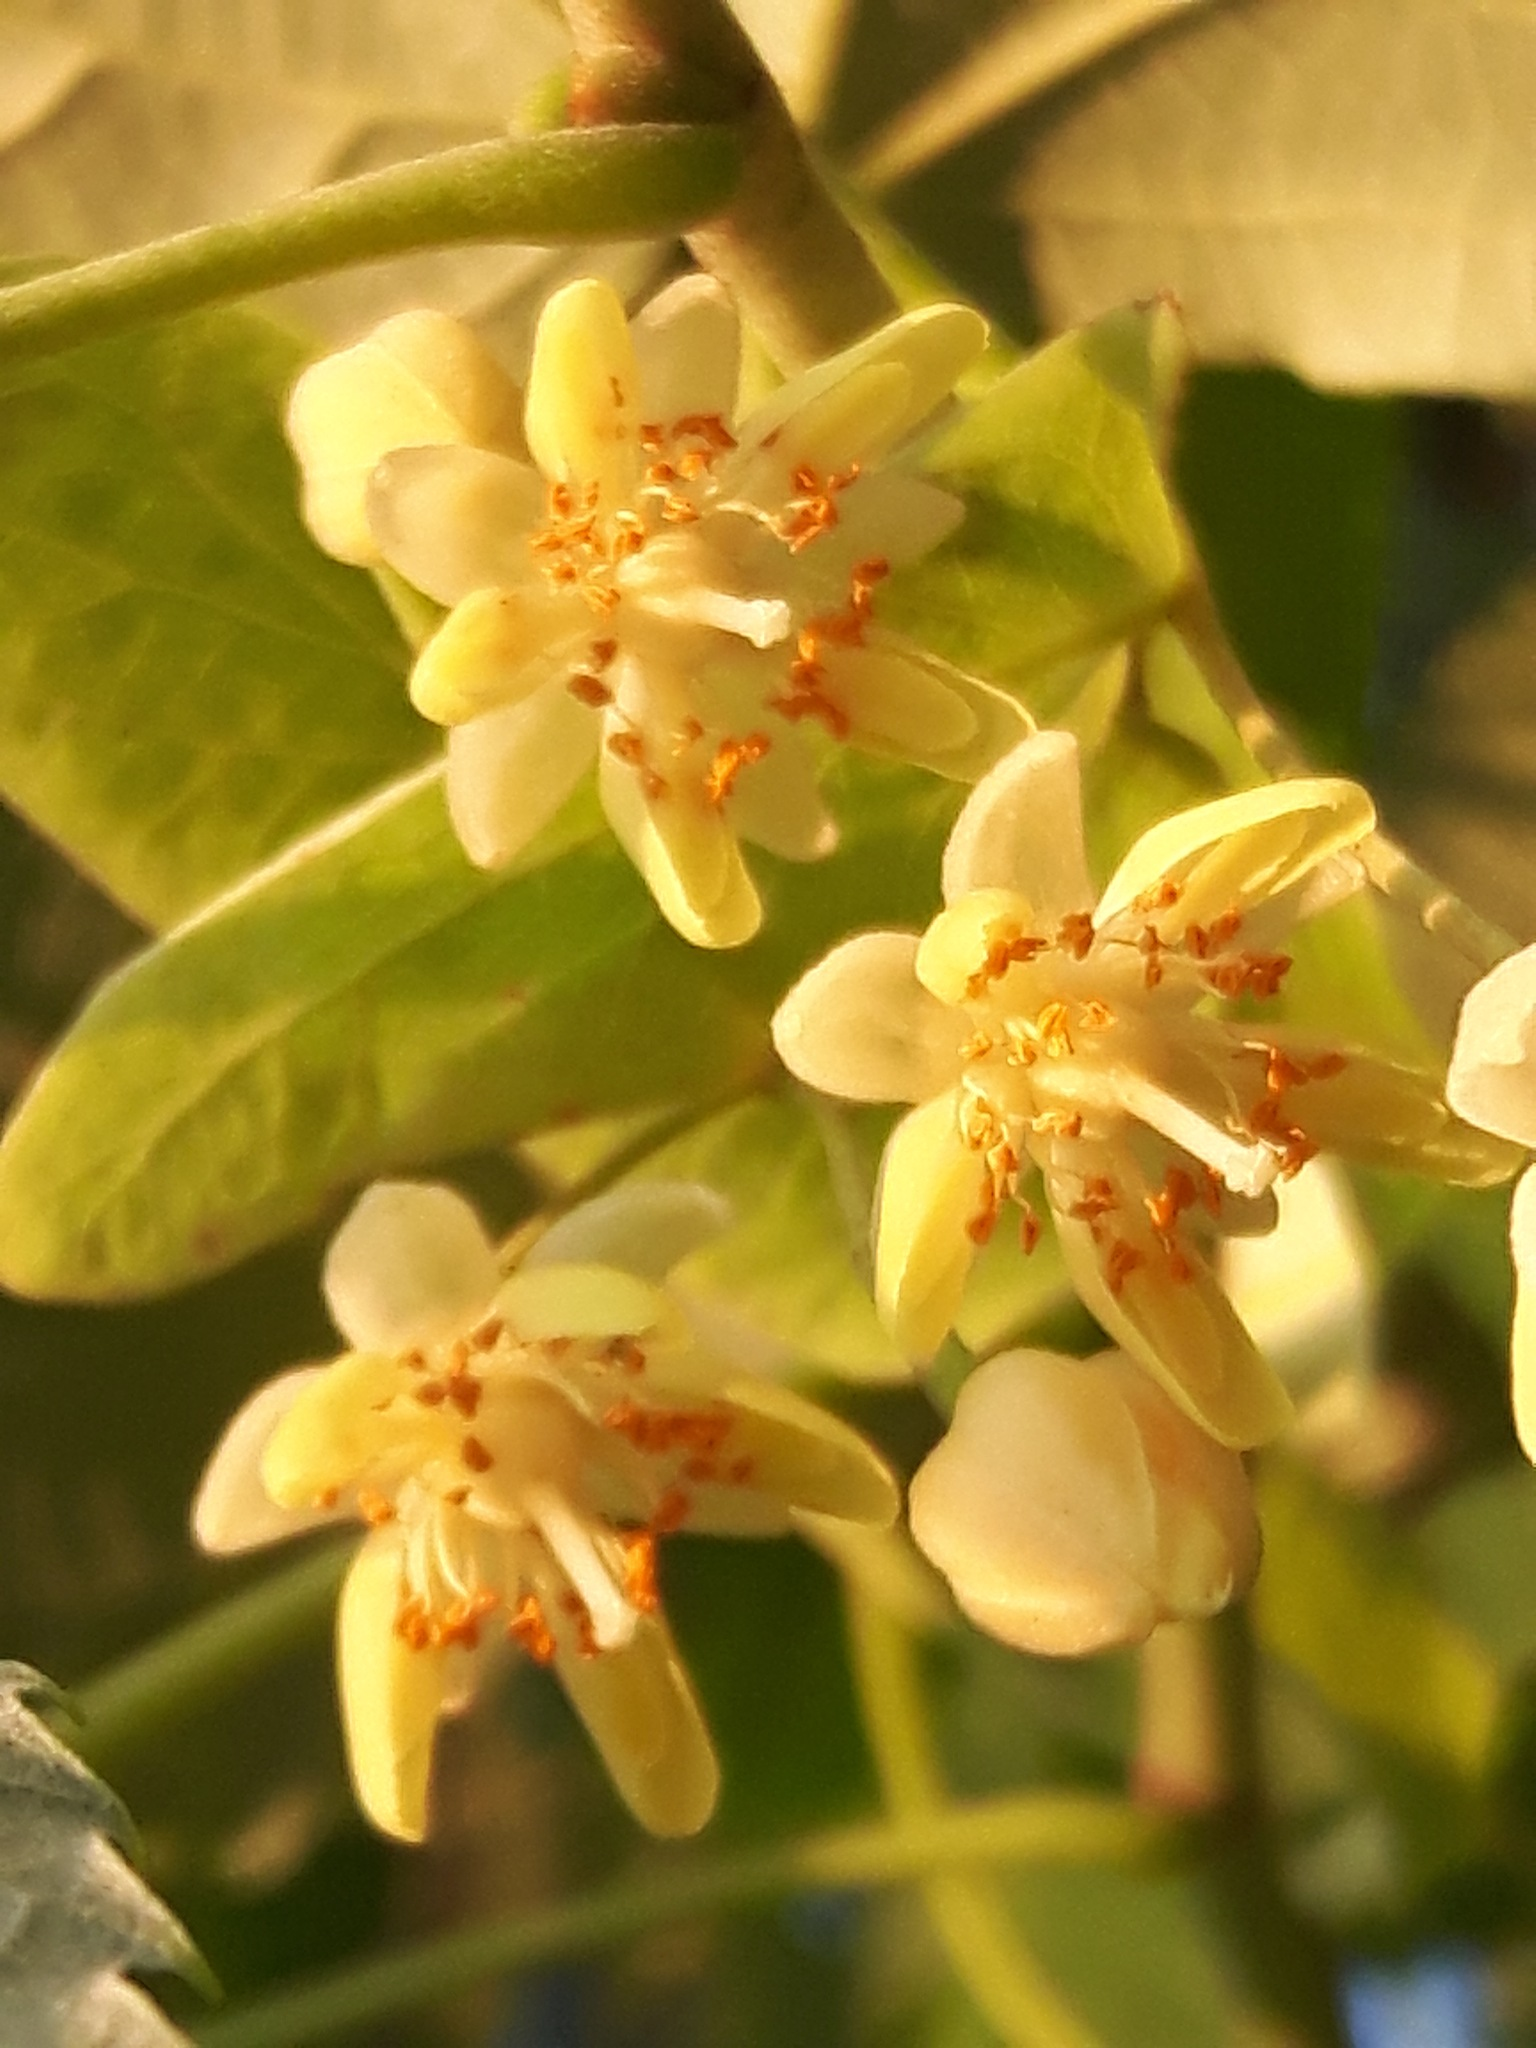 White lime flower with beautiful fragrance by Mevludin_Hasanovic